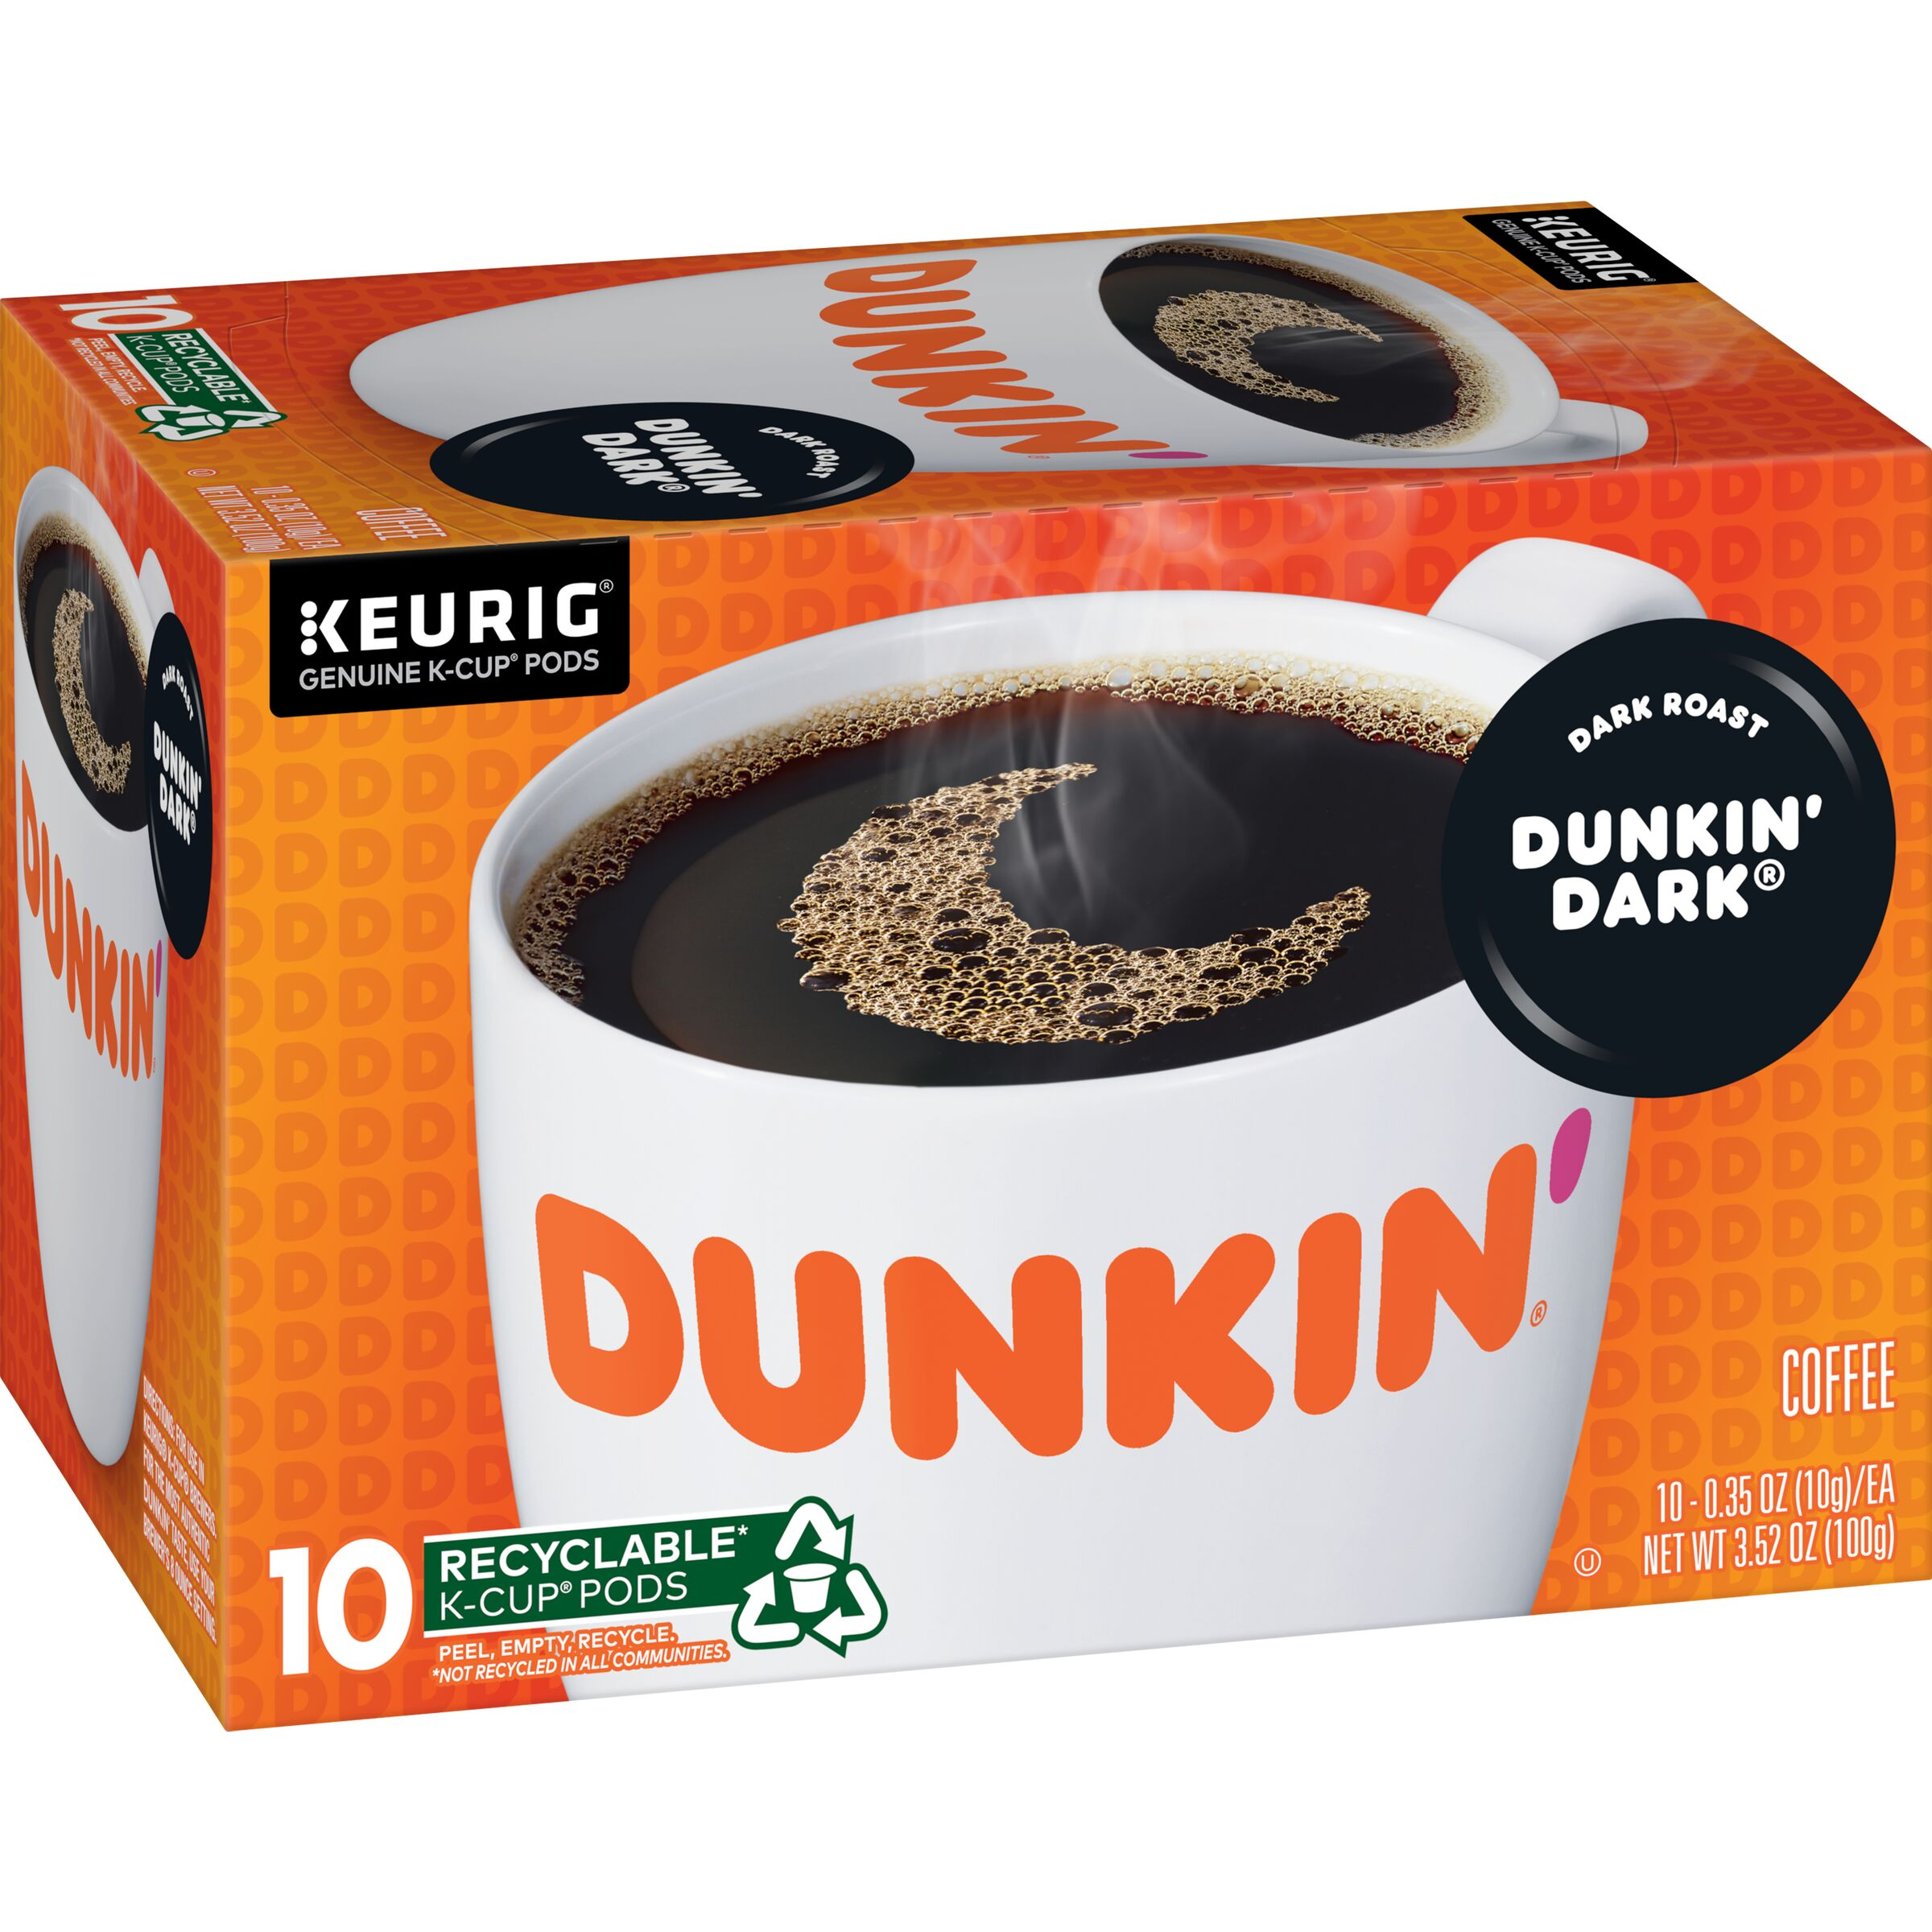 Dunkin' Donuts<sup>®</sup>  Dunkin' Dark® K-Cup Pods, 10 Count